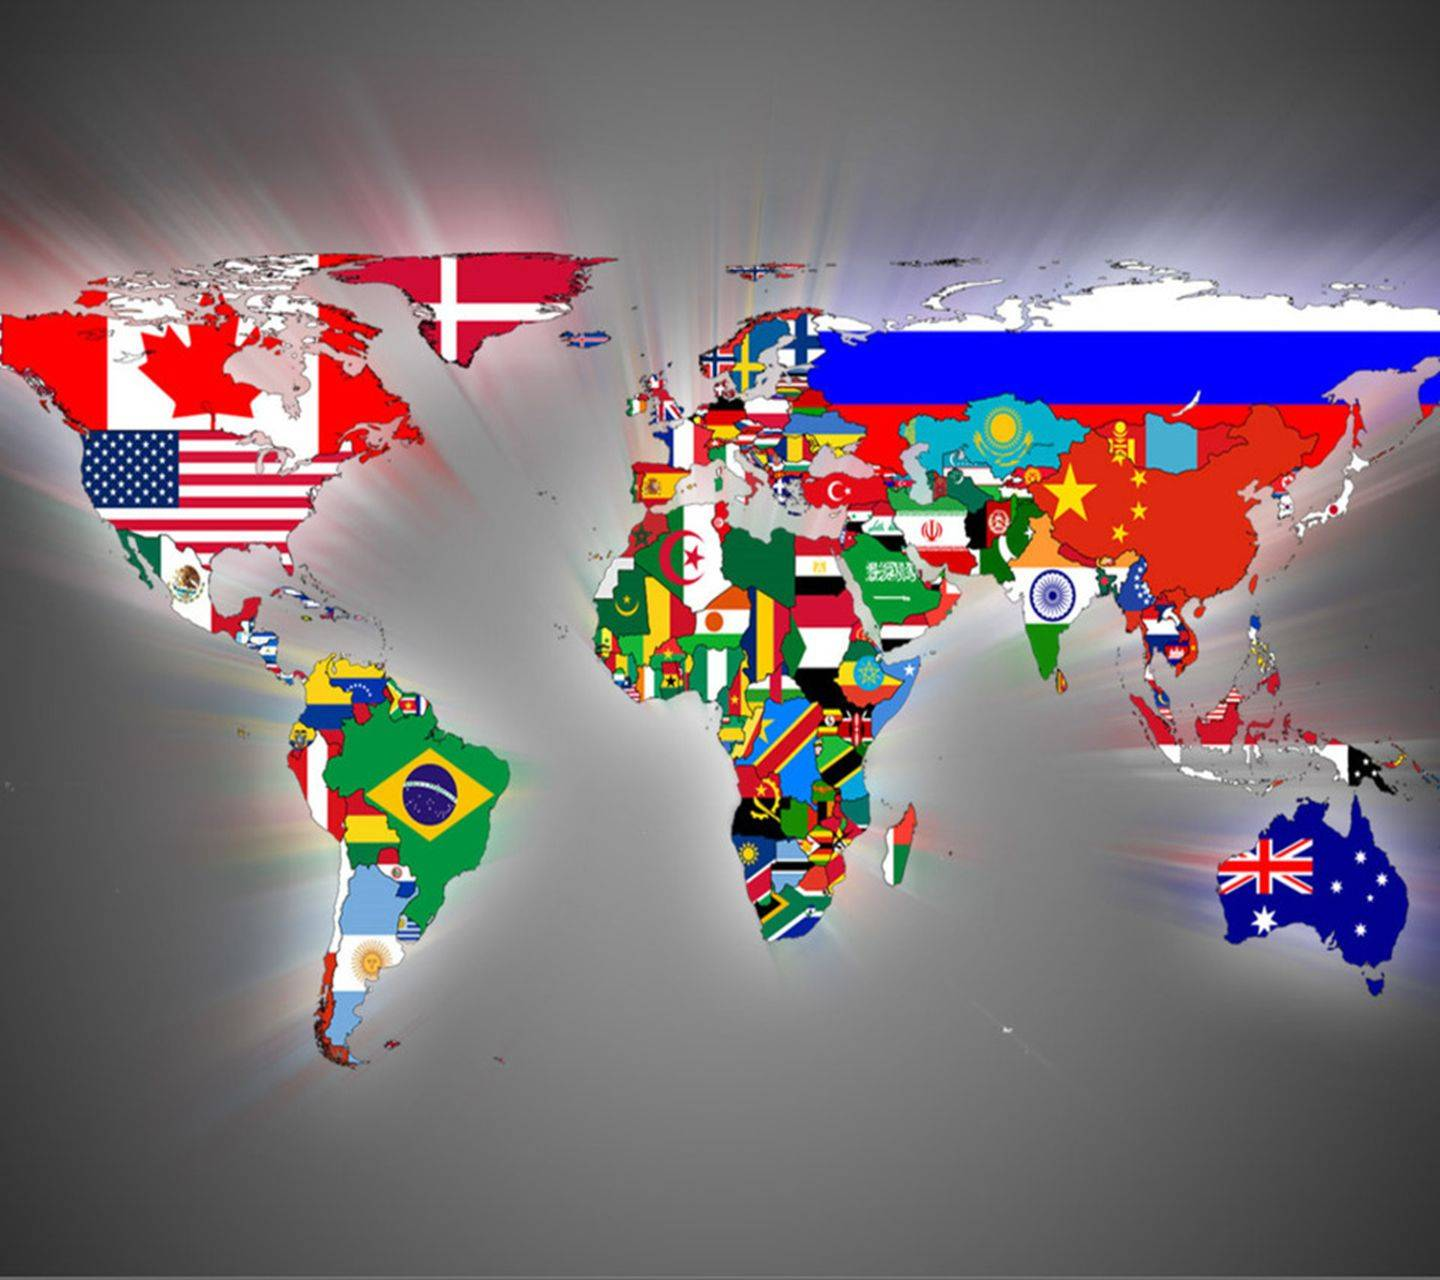 World Map Wallpaper by JULIANNA 0d Free on ZEDGE™